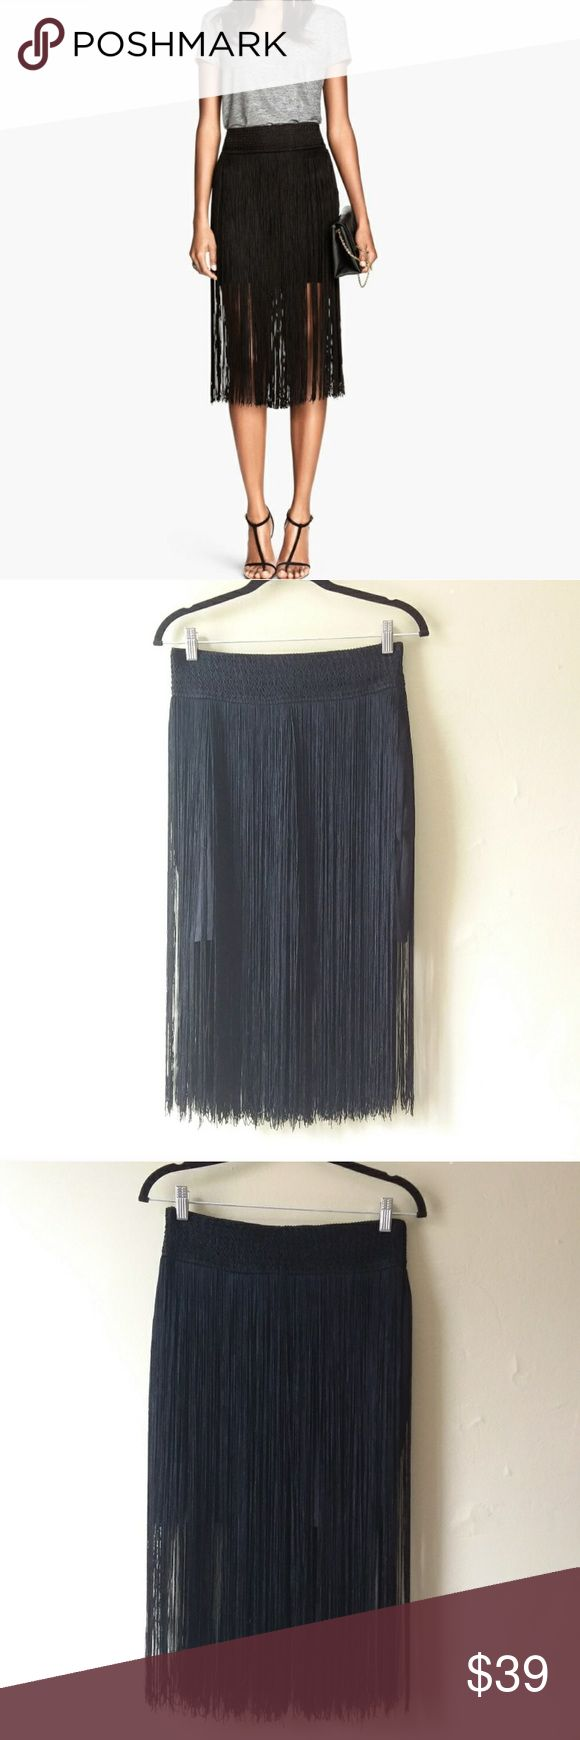 H&M fringe black skirt New with tags. Mini. Chanel Dior Zara Fendi Kenzo Prada Hermes Michael Kors Valentino Lacoste Louis Vuitton Balenciaga Alexander Wang Kate Spade Hugo Boss Burberry Prada Gucci Runway Fashion show.  Free people. Premuim Signature collection. Bundle with other items to get 15% off. H&M Skirts Midi